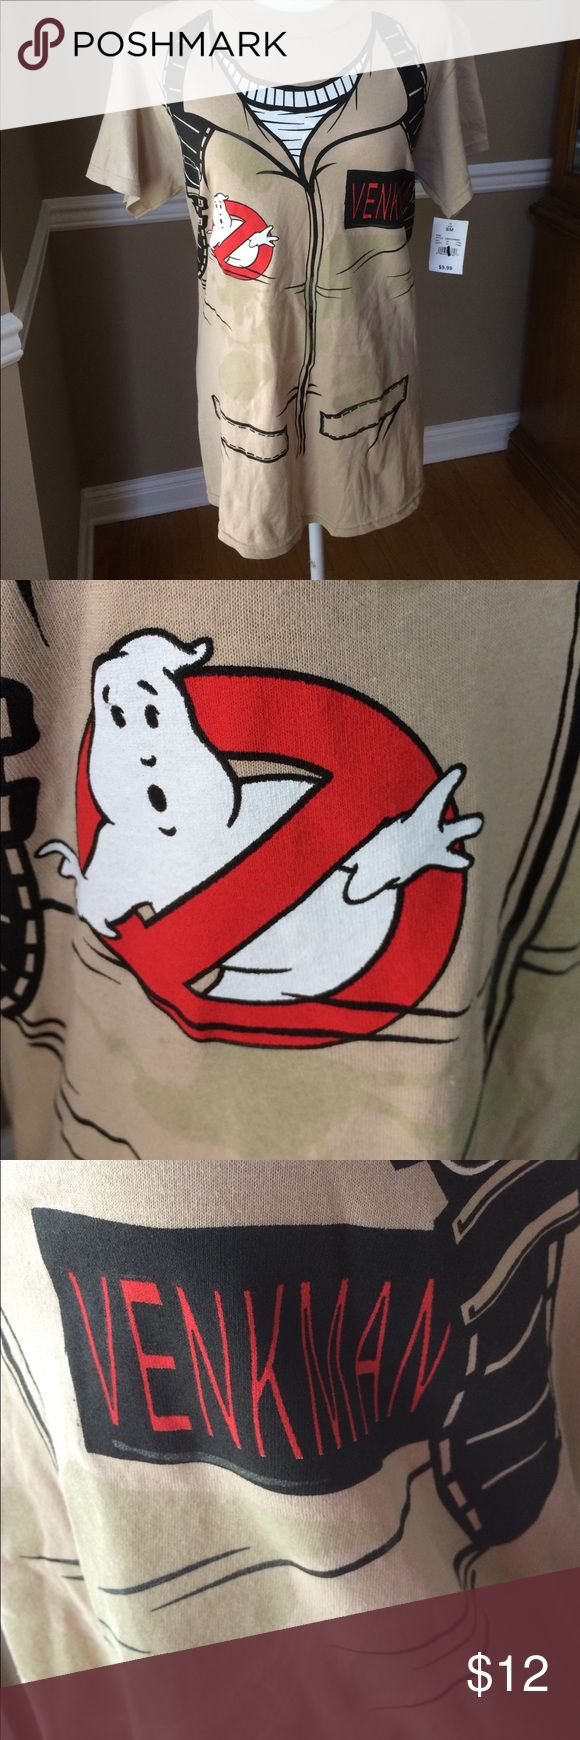 Ghostbusters tee Venkman uniform look-a-like tan tee shirt. Ghostbusters logo on right chest area, has areas on front only that glow in the dark! Shirts Tees - Short Sleeve